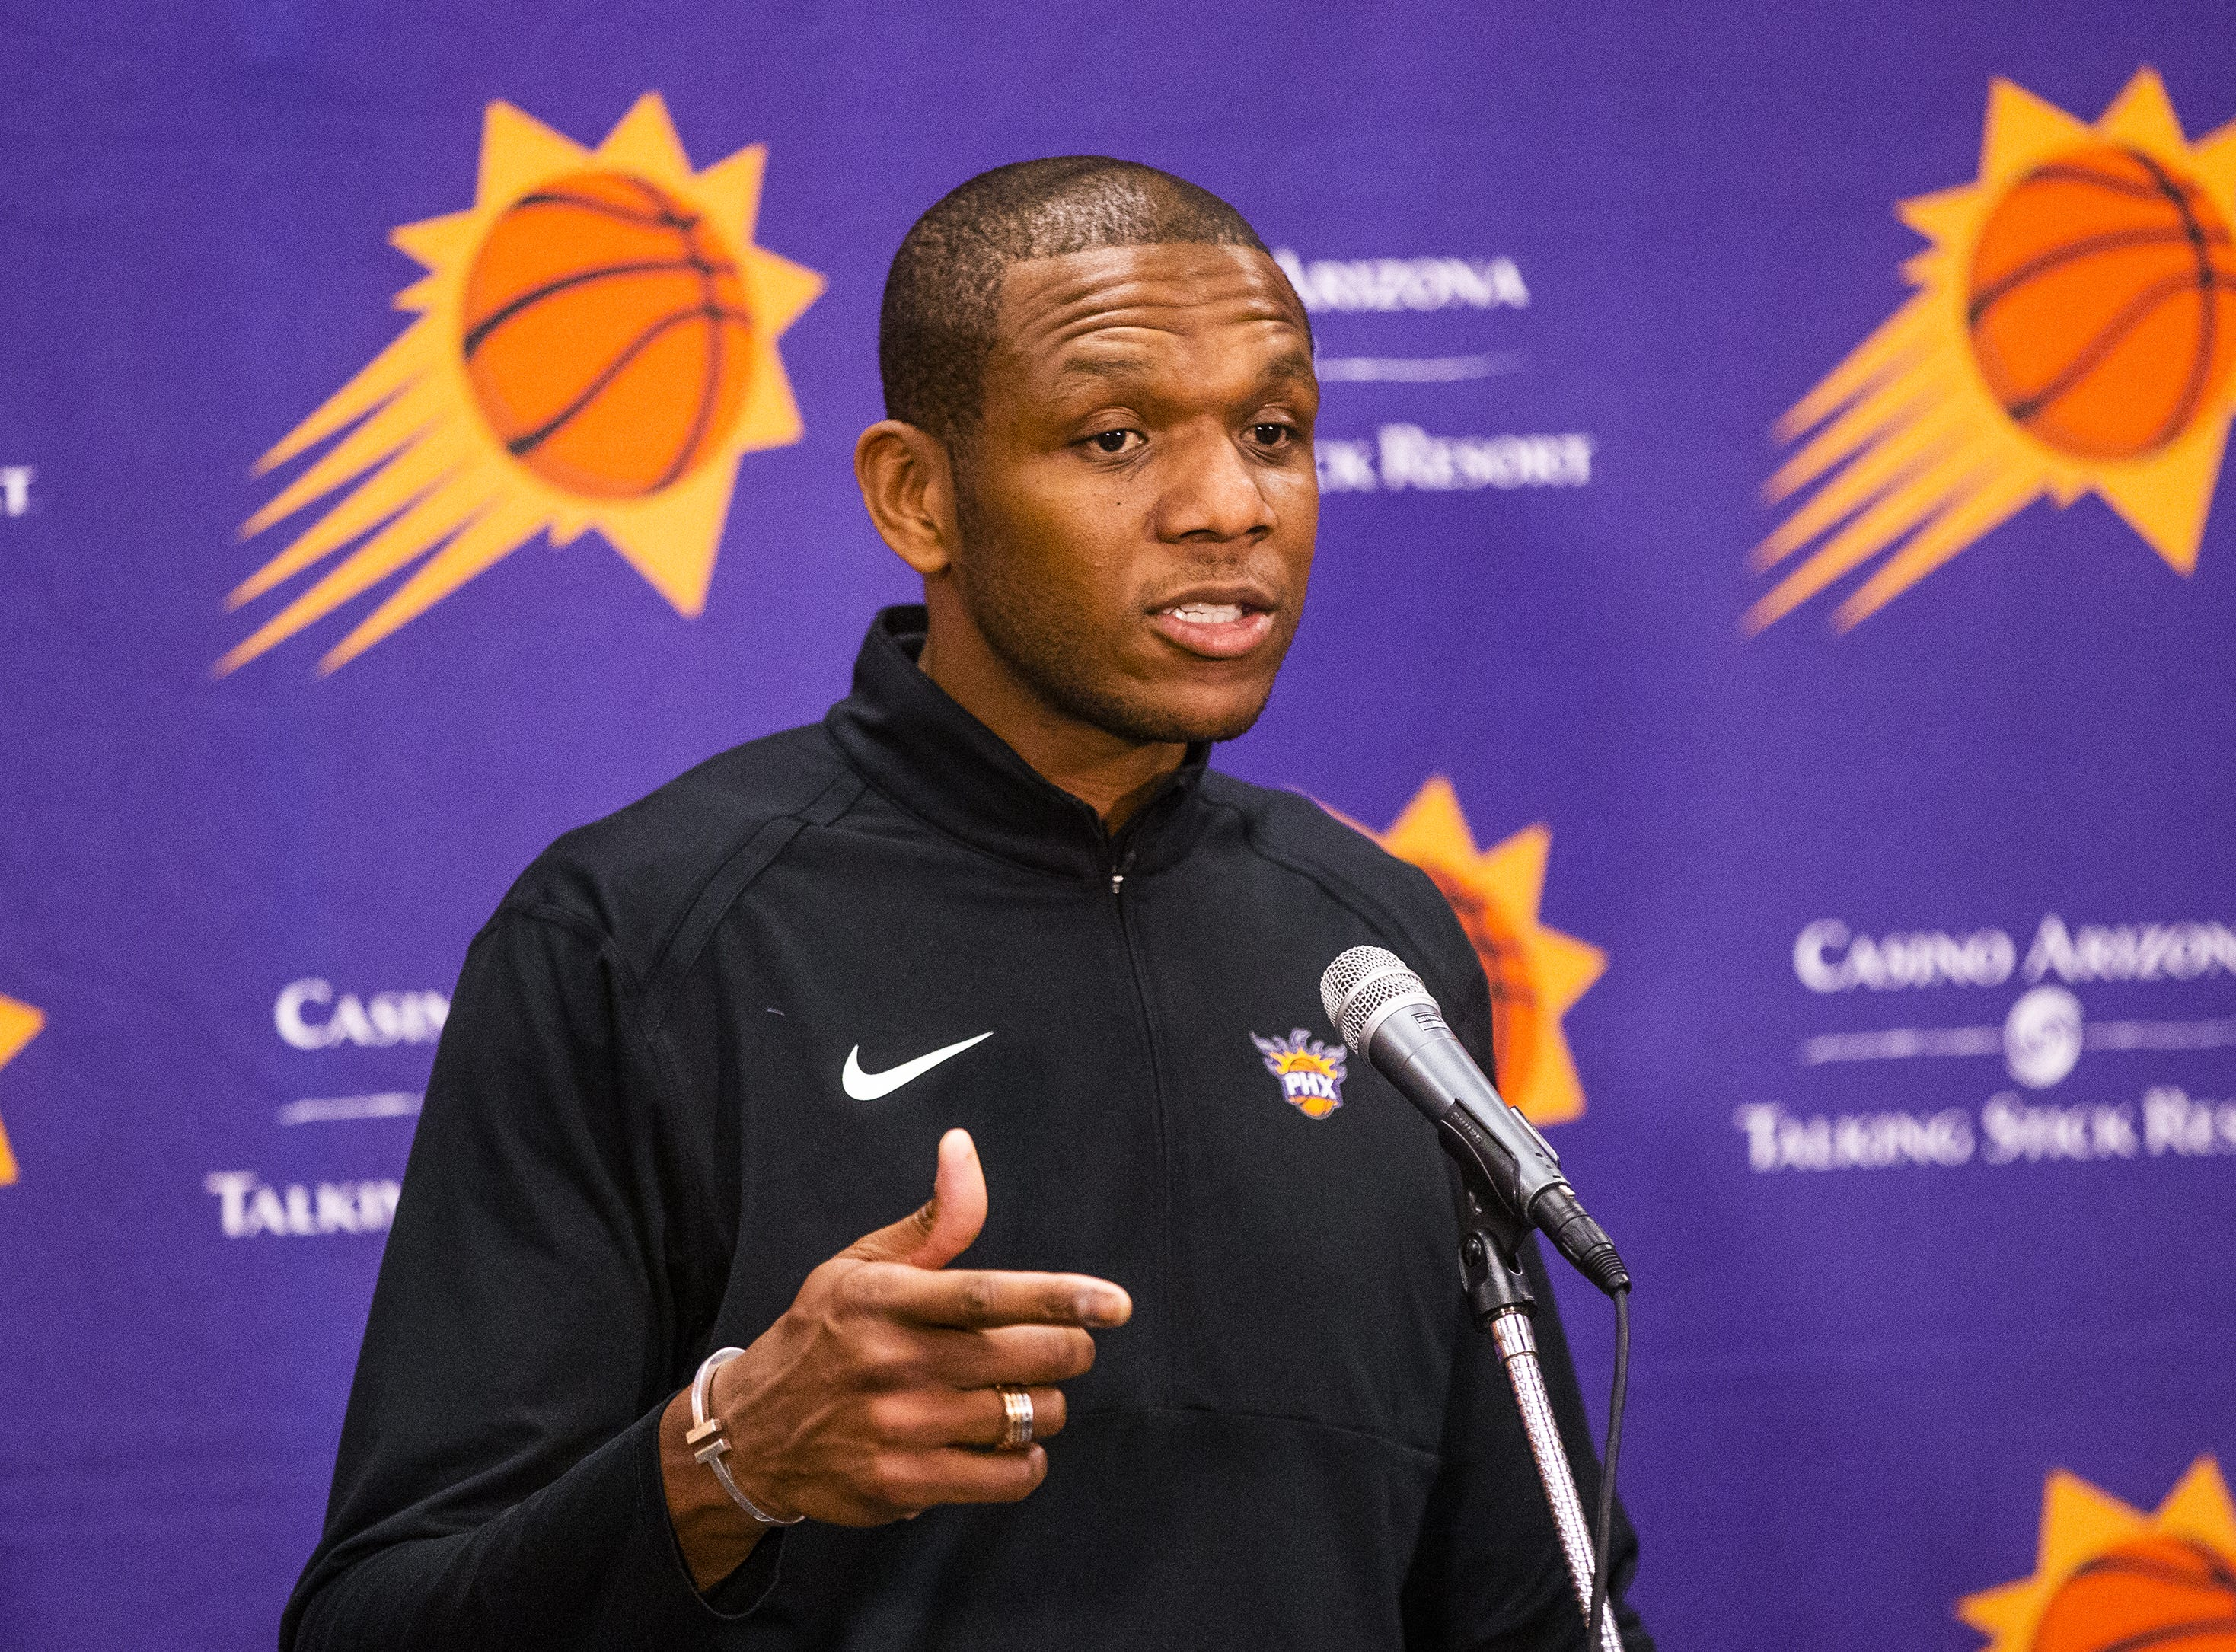 James Jones spent 14 years in the NBA as a player with the Miami Heat, Cleveland Cavaliers, Phoenix Suns, Indiana Pacers and Portland Trail Blazers.